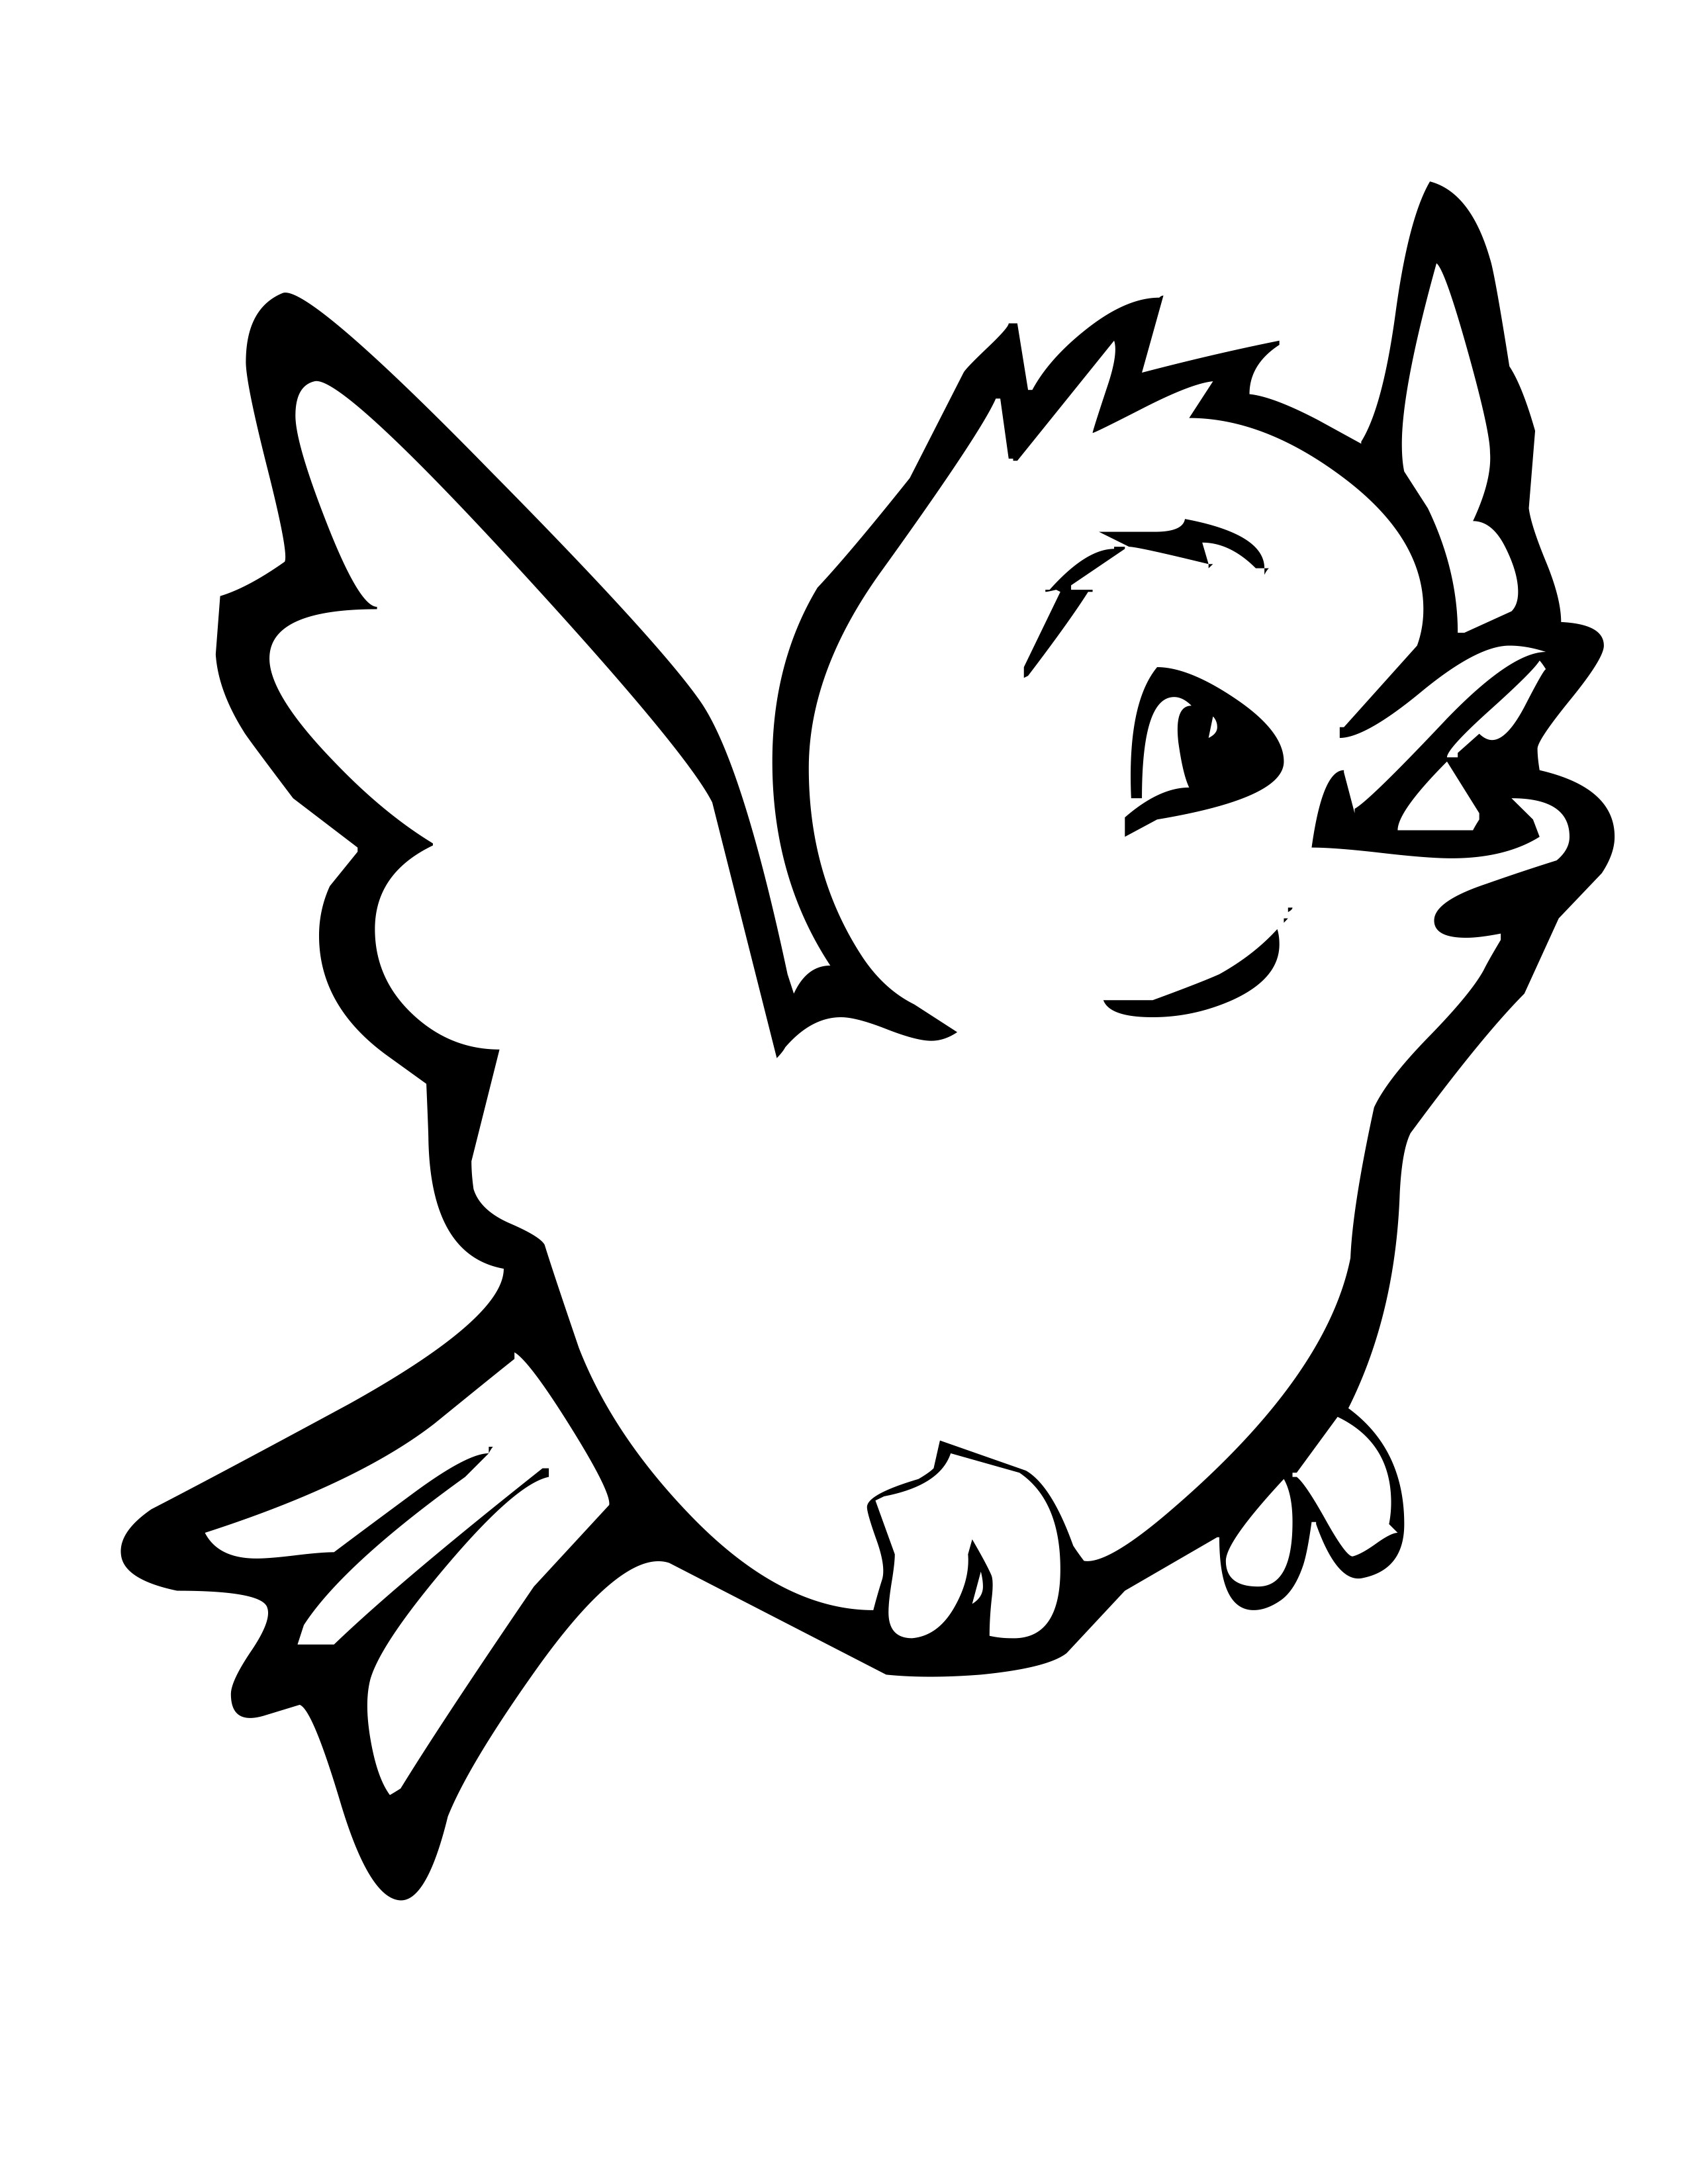 bird coloring images bluebird coloring page samantha bell bird images coloring